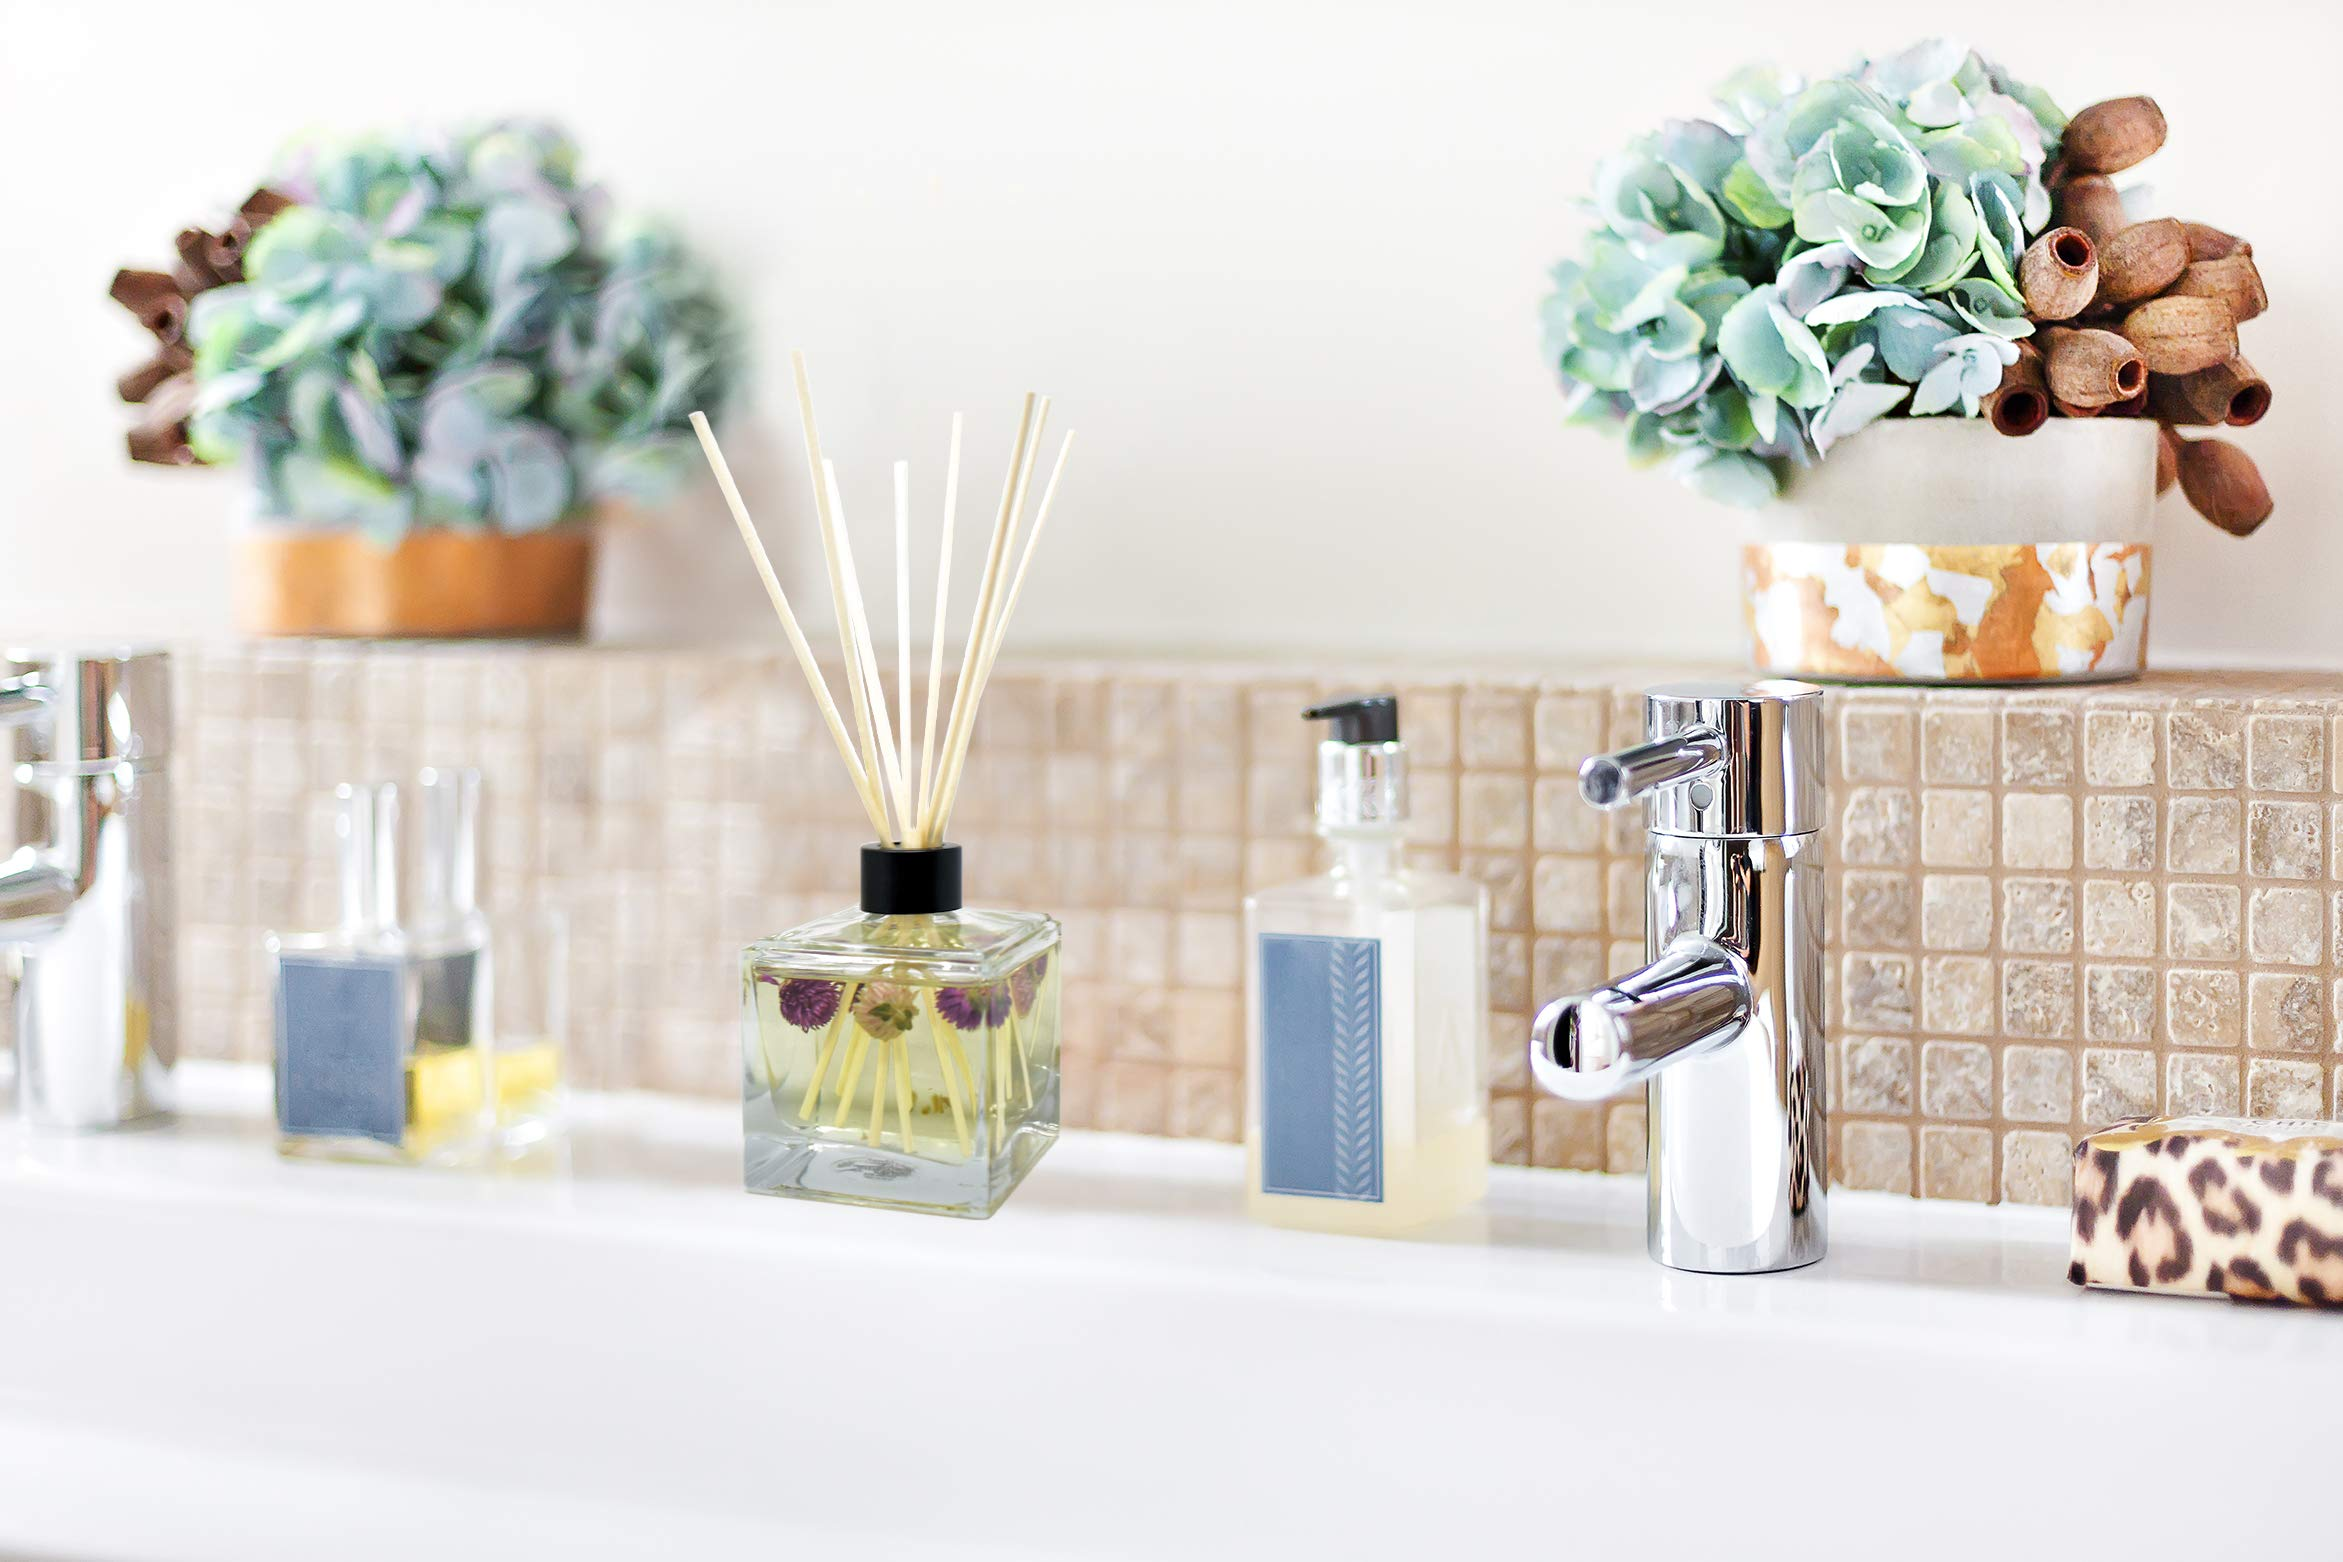 LOVSPA Fresh Cut Flowers Reed Diffuser Oil and Sticks Gift Set | Spring is in The Air! A Floral Medley of Sweet Lilac, Pink Freesia, Hyacinth, Rose & Green Ivy Leaves | Real Flowers in The Bottle! by LOVSPA (Image #4)